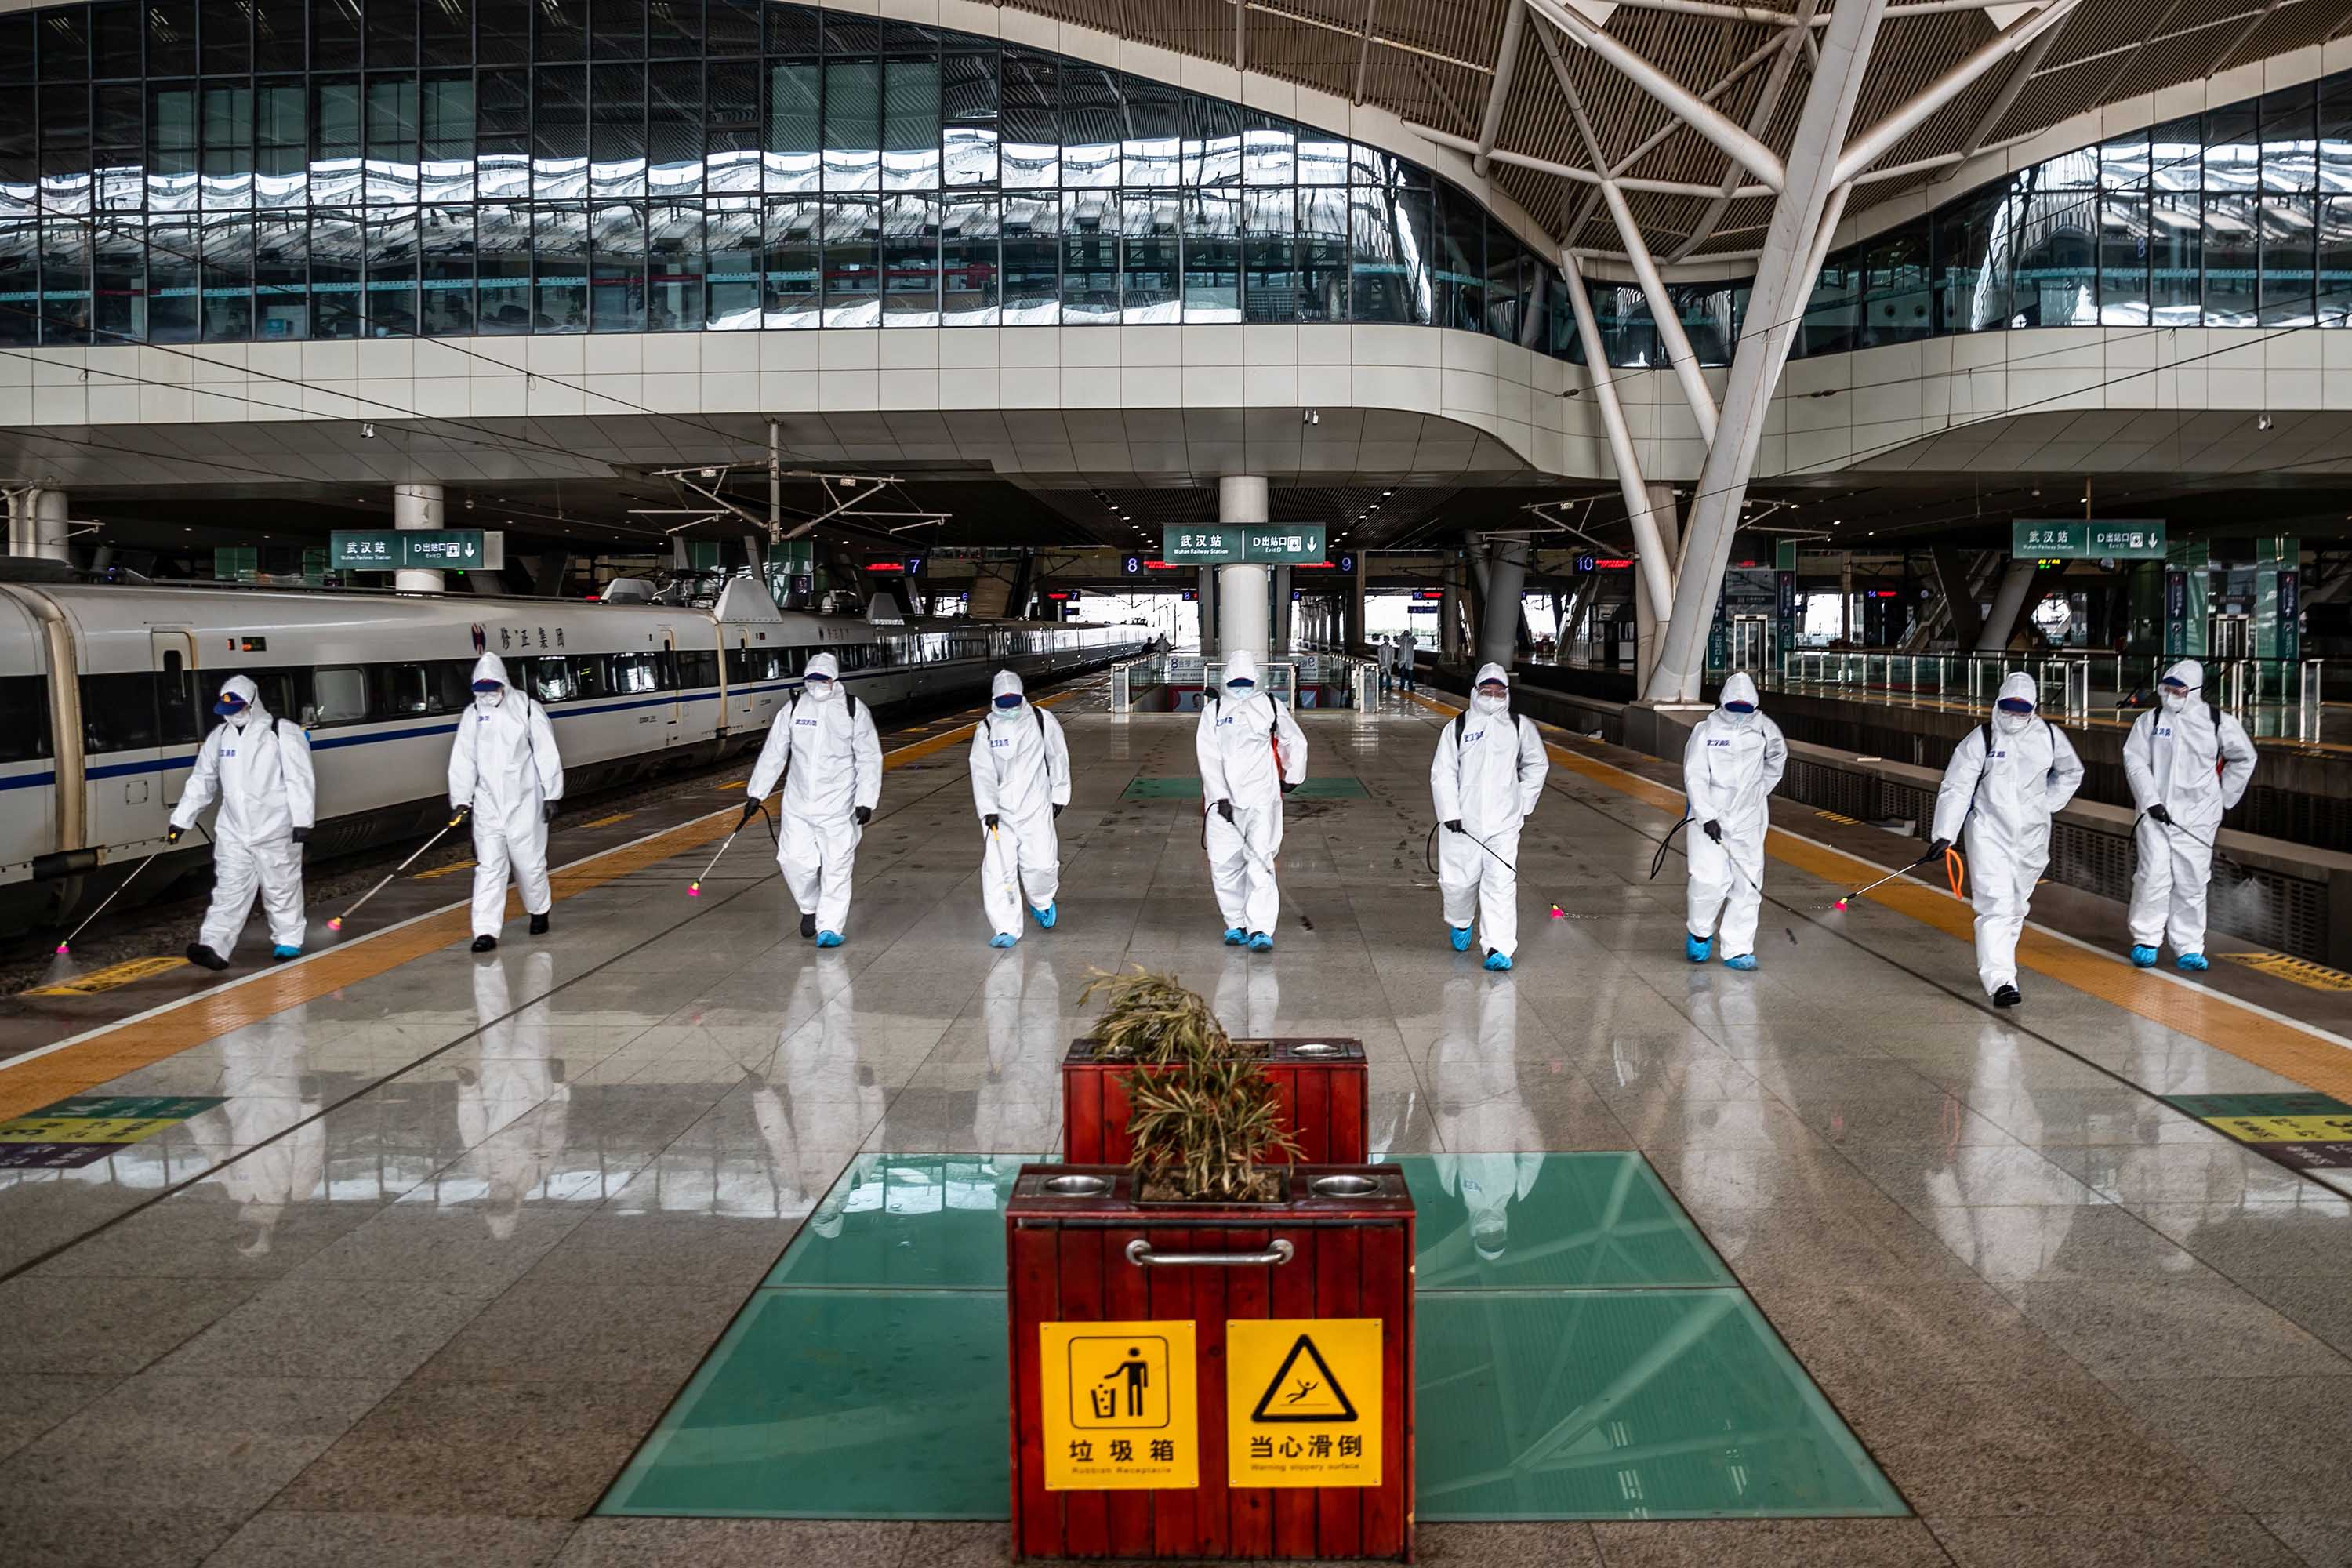 Workers spray disinfectant at Wuhan Railway Station in China's Hubei province on March 24. China has announced that lockdown measures would be lifted for many in the province from Wednesday, and in the provincial capital of Wuhan f April 8.